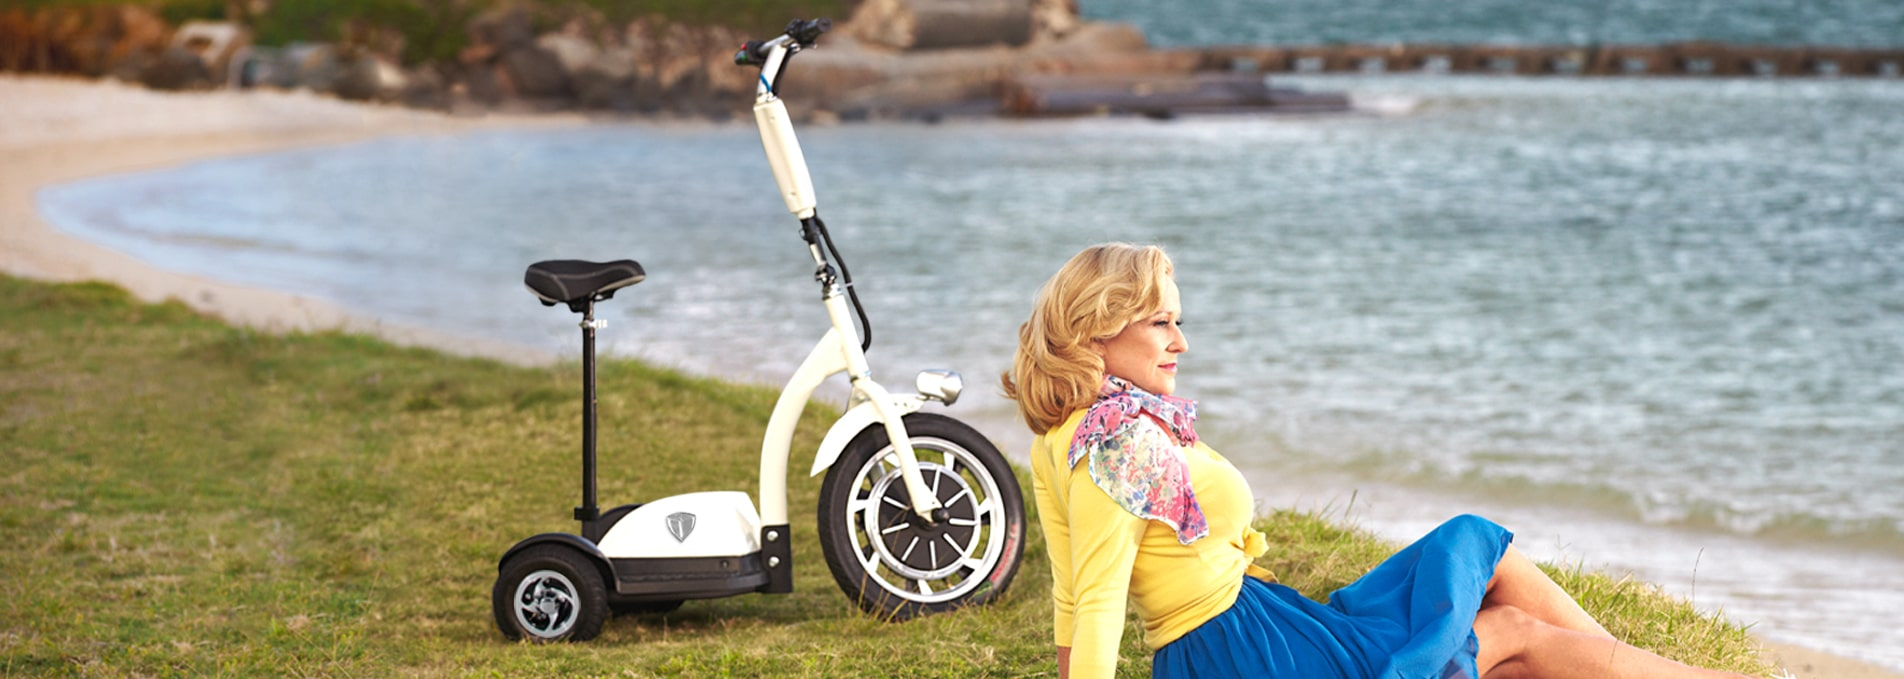 How to Fix a Three-Wheel Electric Scooter